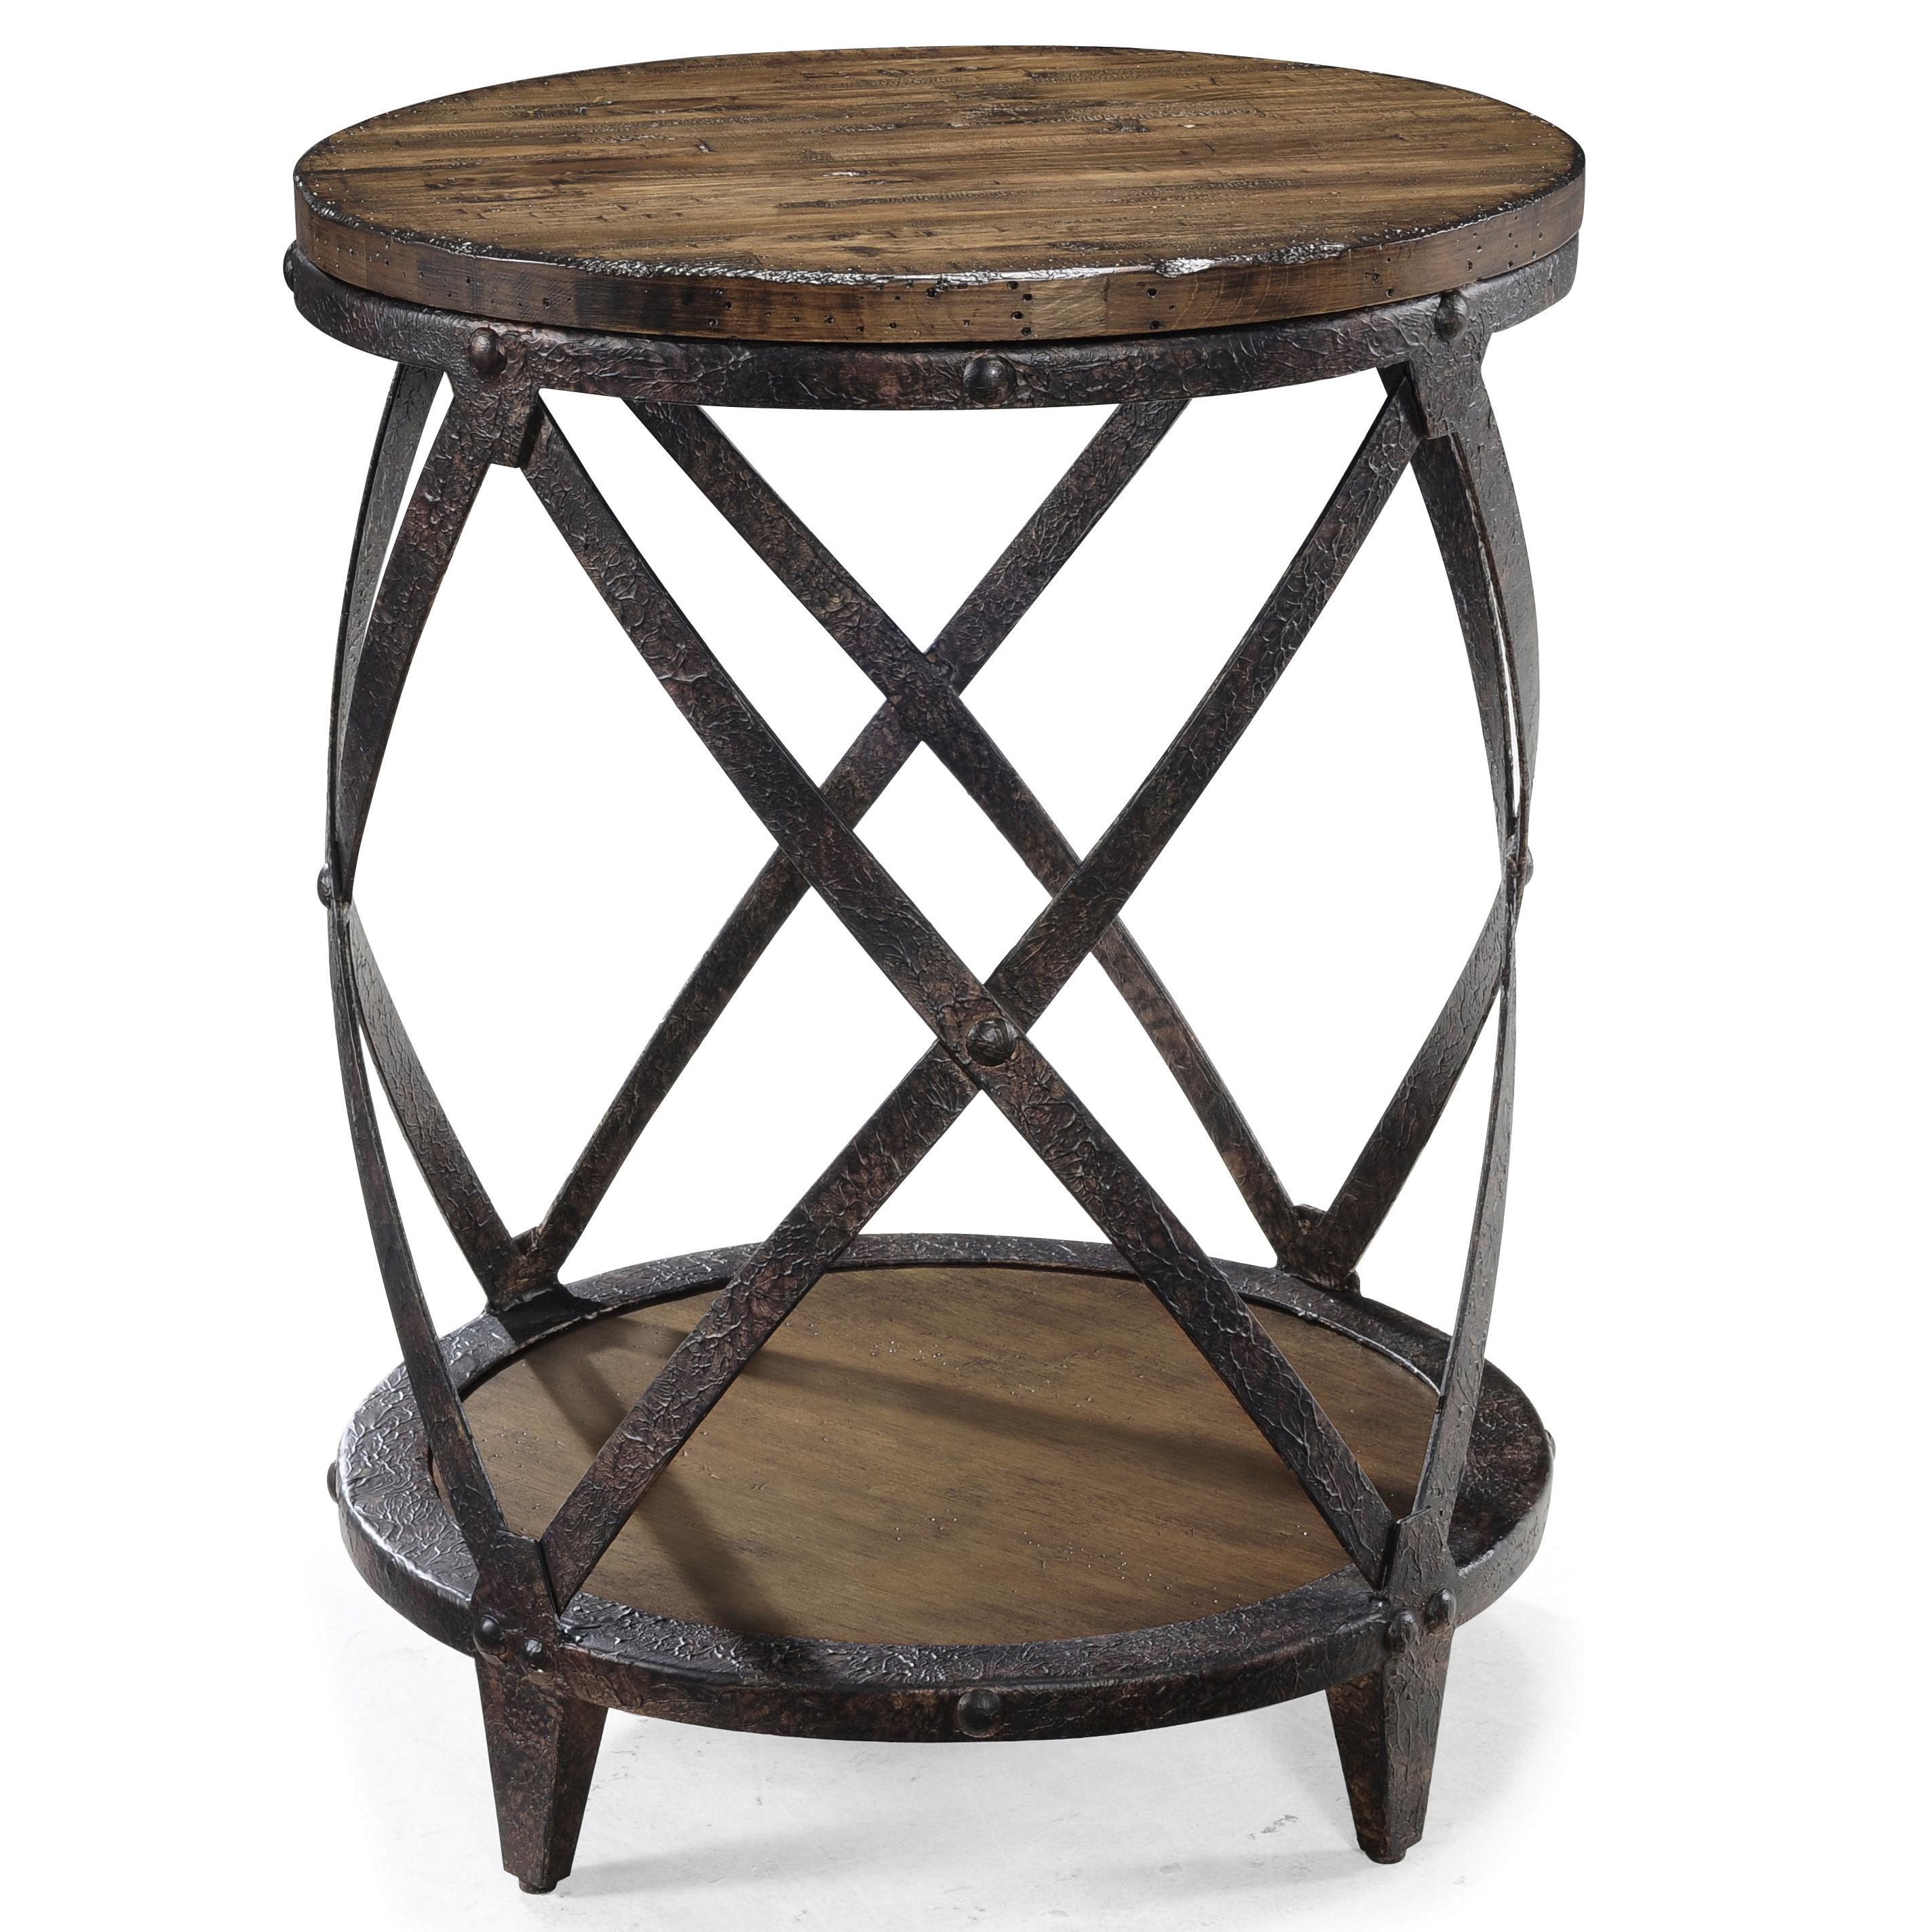 round accent end table with rustic iron legs magnussen home products color pinebrook tables turquoise dresser garden furniture decor black dining astoria grand bedroom marble top